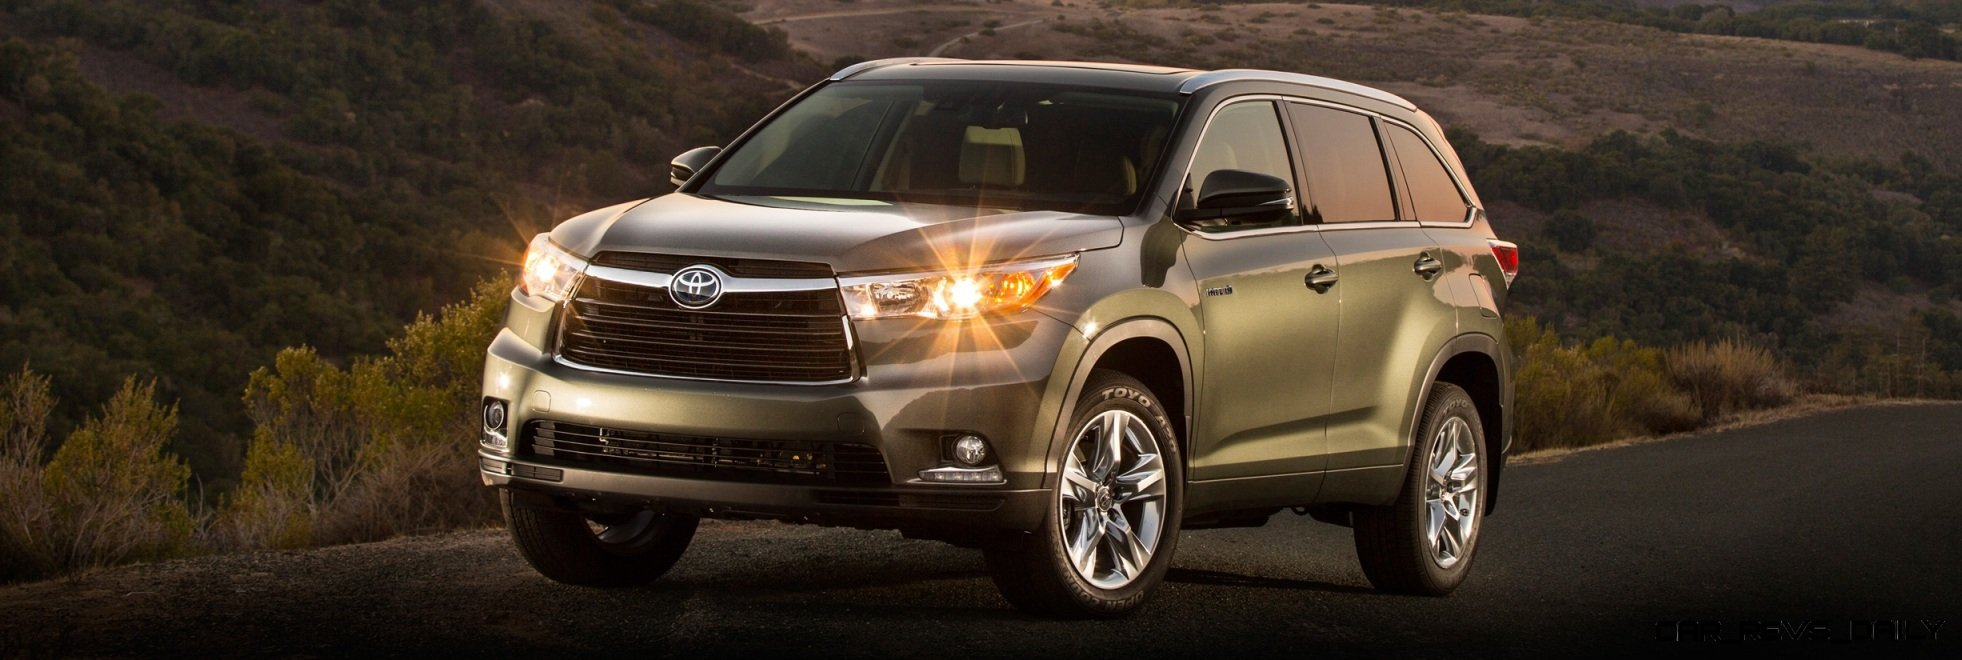 Related posts 2016 toyota tundra overview cargurus 2016 toyota 4runner 2017 2018 best cars Toyota highlander 2014 exterior